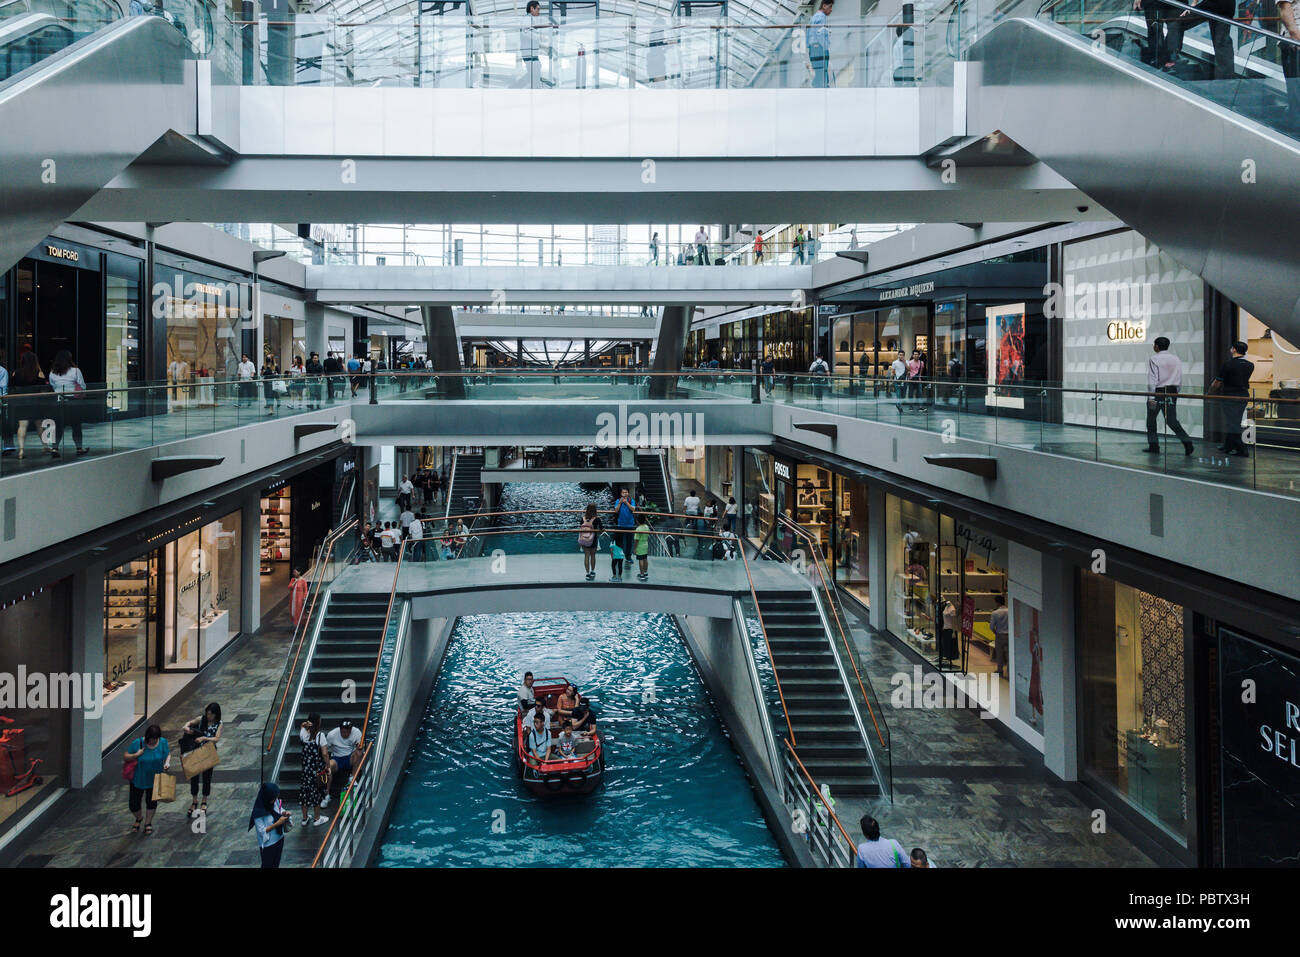 Tourists boat in luxury mall canal in the shoppes at marina bay sands. Singapore - Stock Image